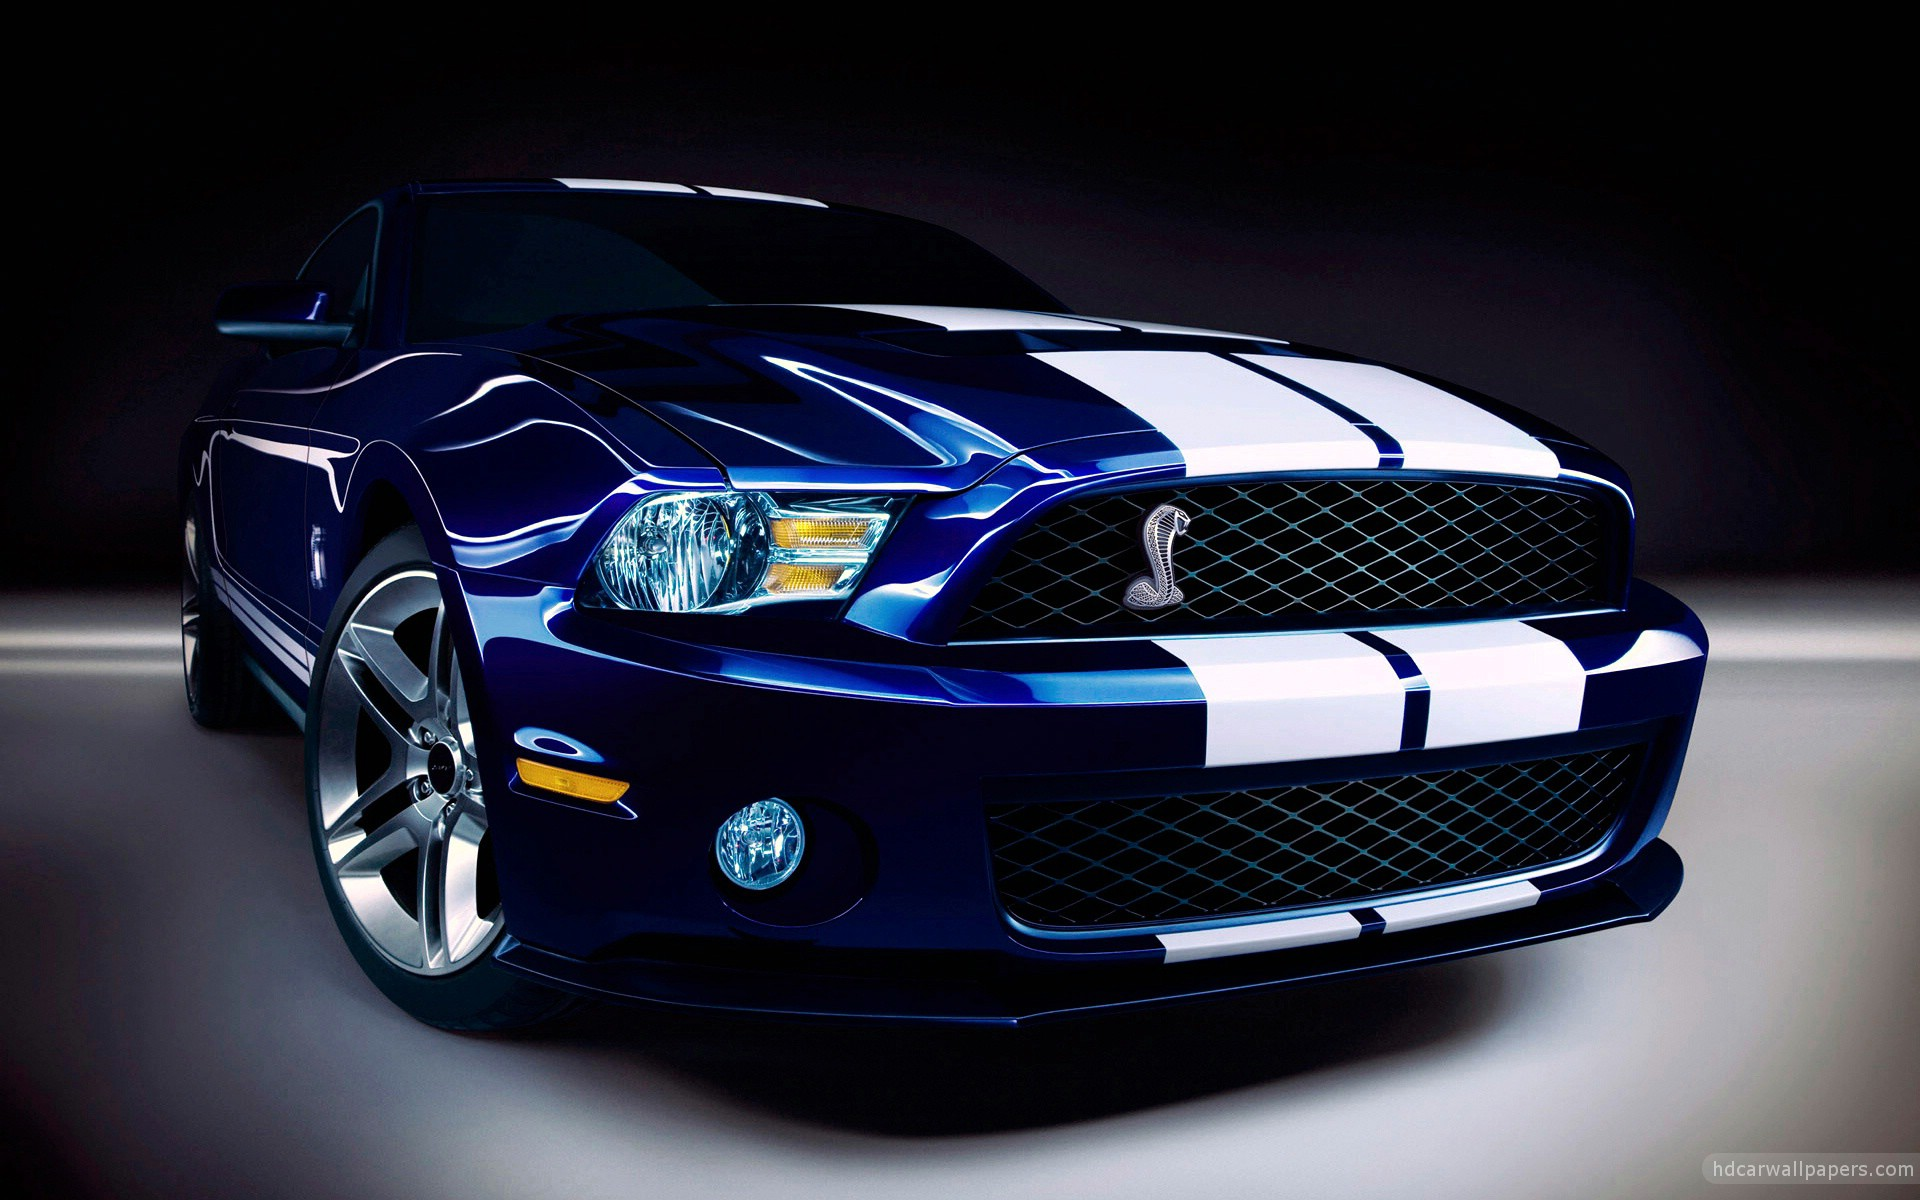 2010 ford shelby gt500 wallpaper hd car wallpapers 2010 ford shelby gt500 voltagebd Images